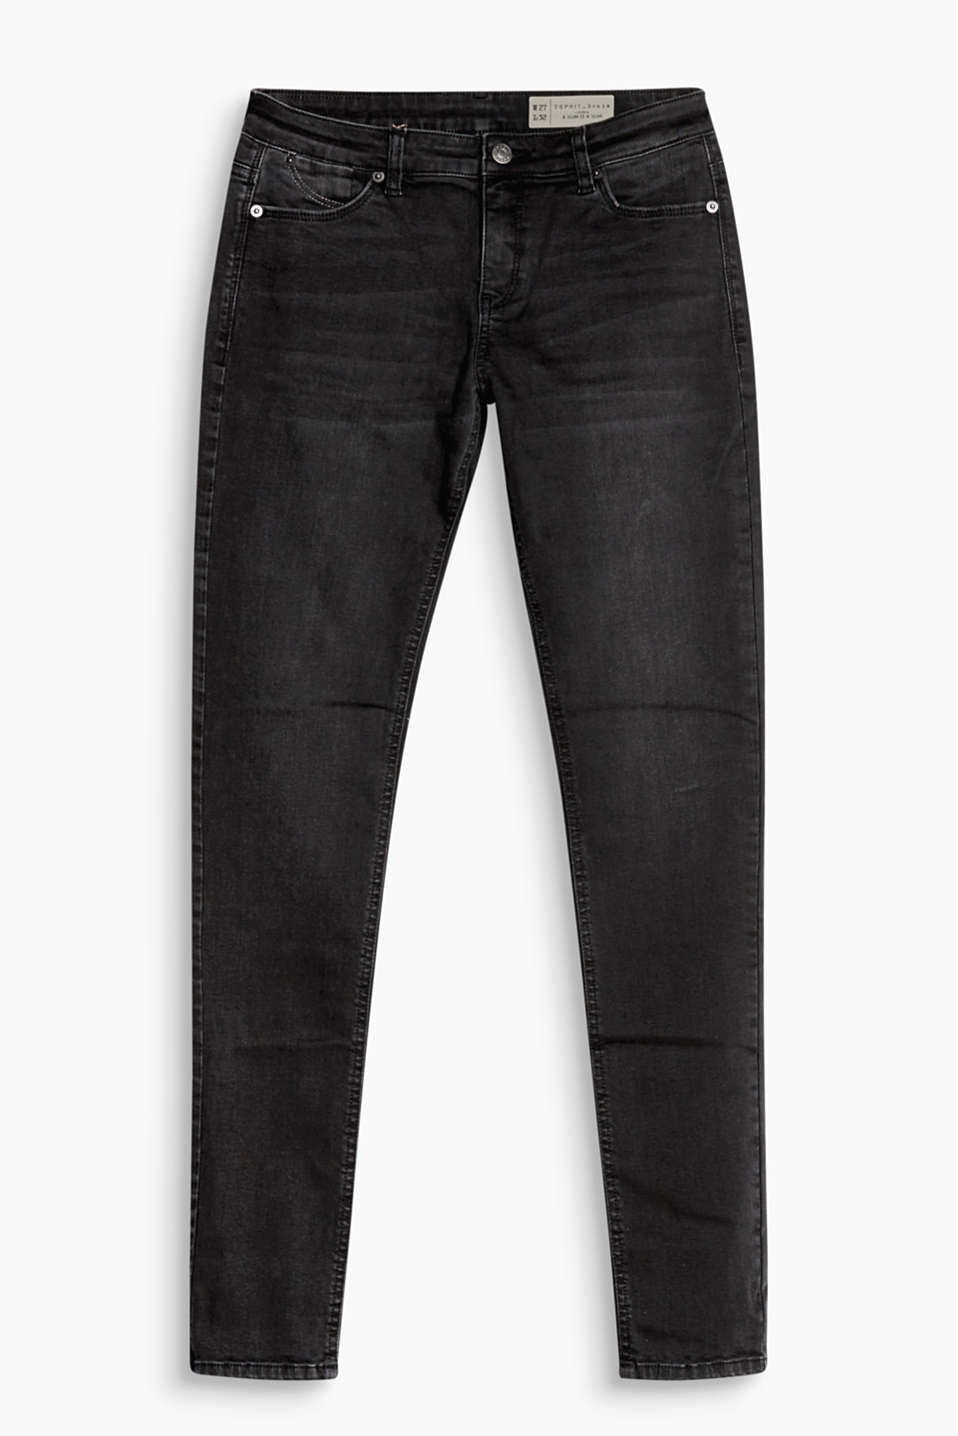 A pair of black jeans for your basics: stretch jeans in a slim cut with five pockets and wrinkled effects